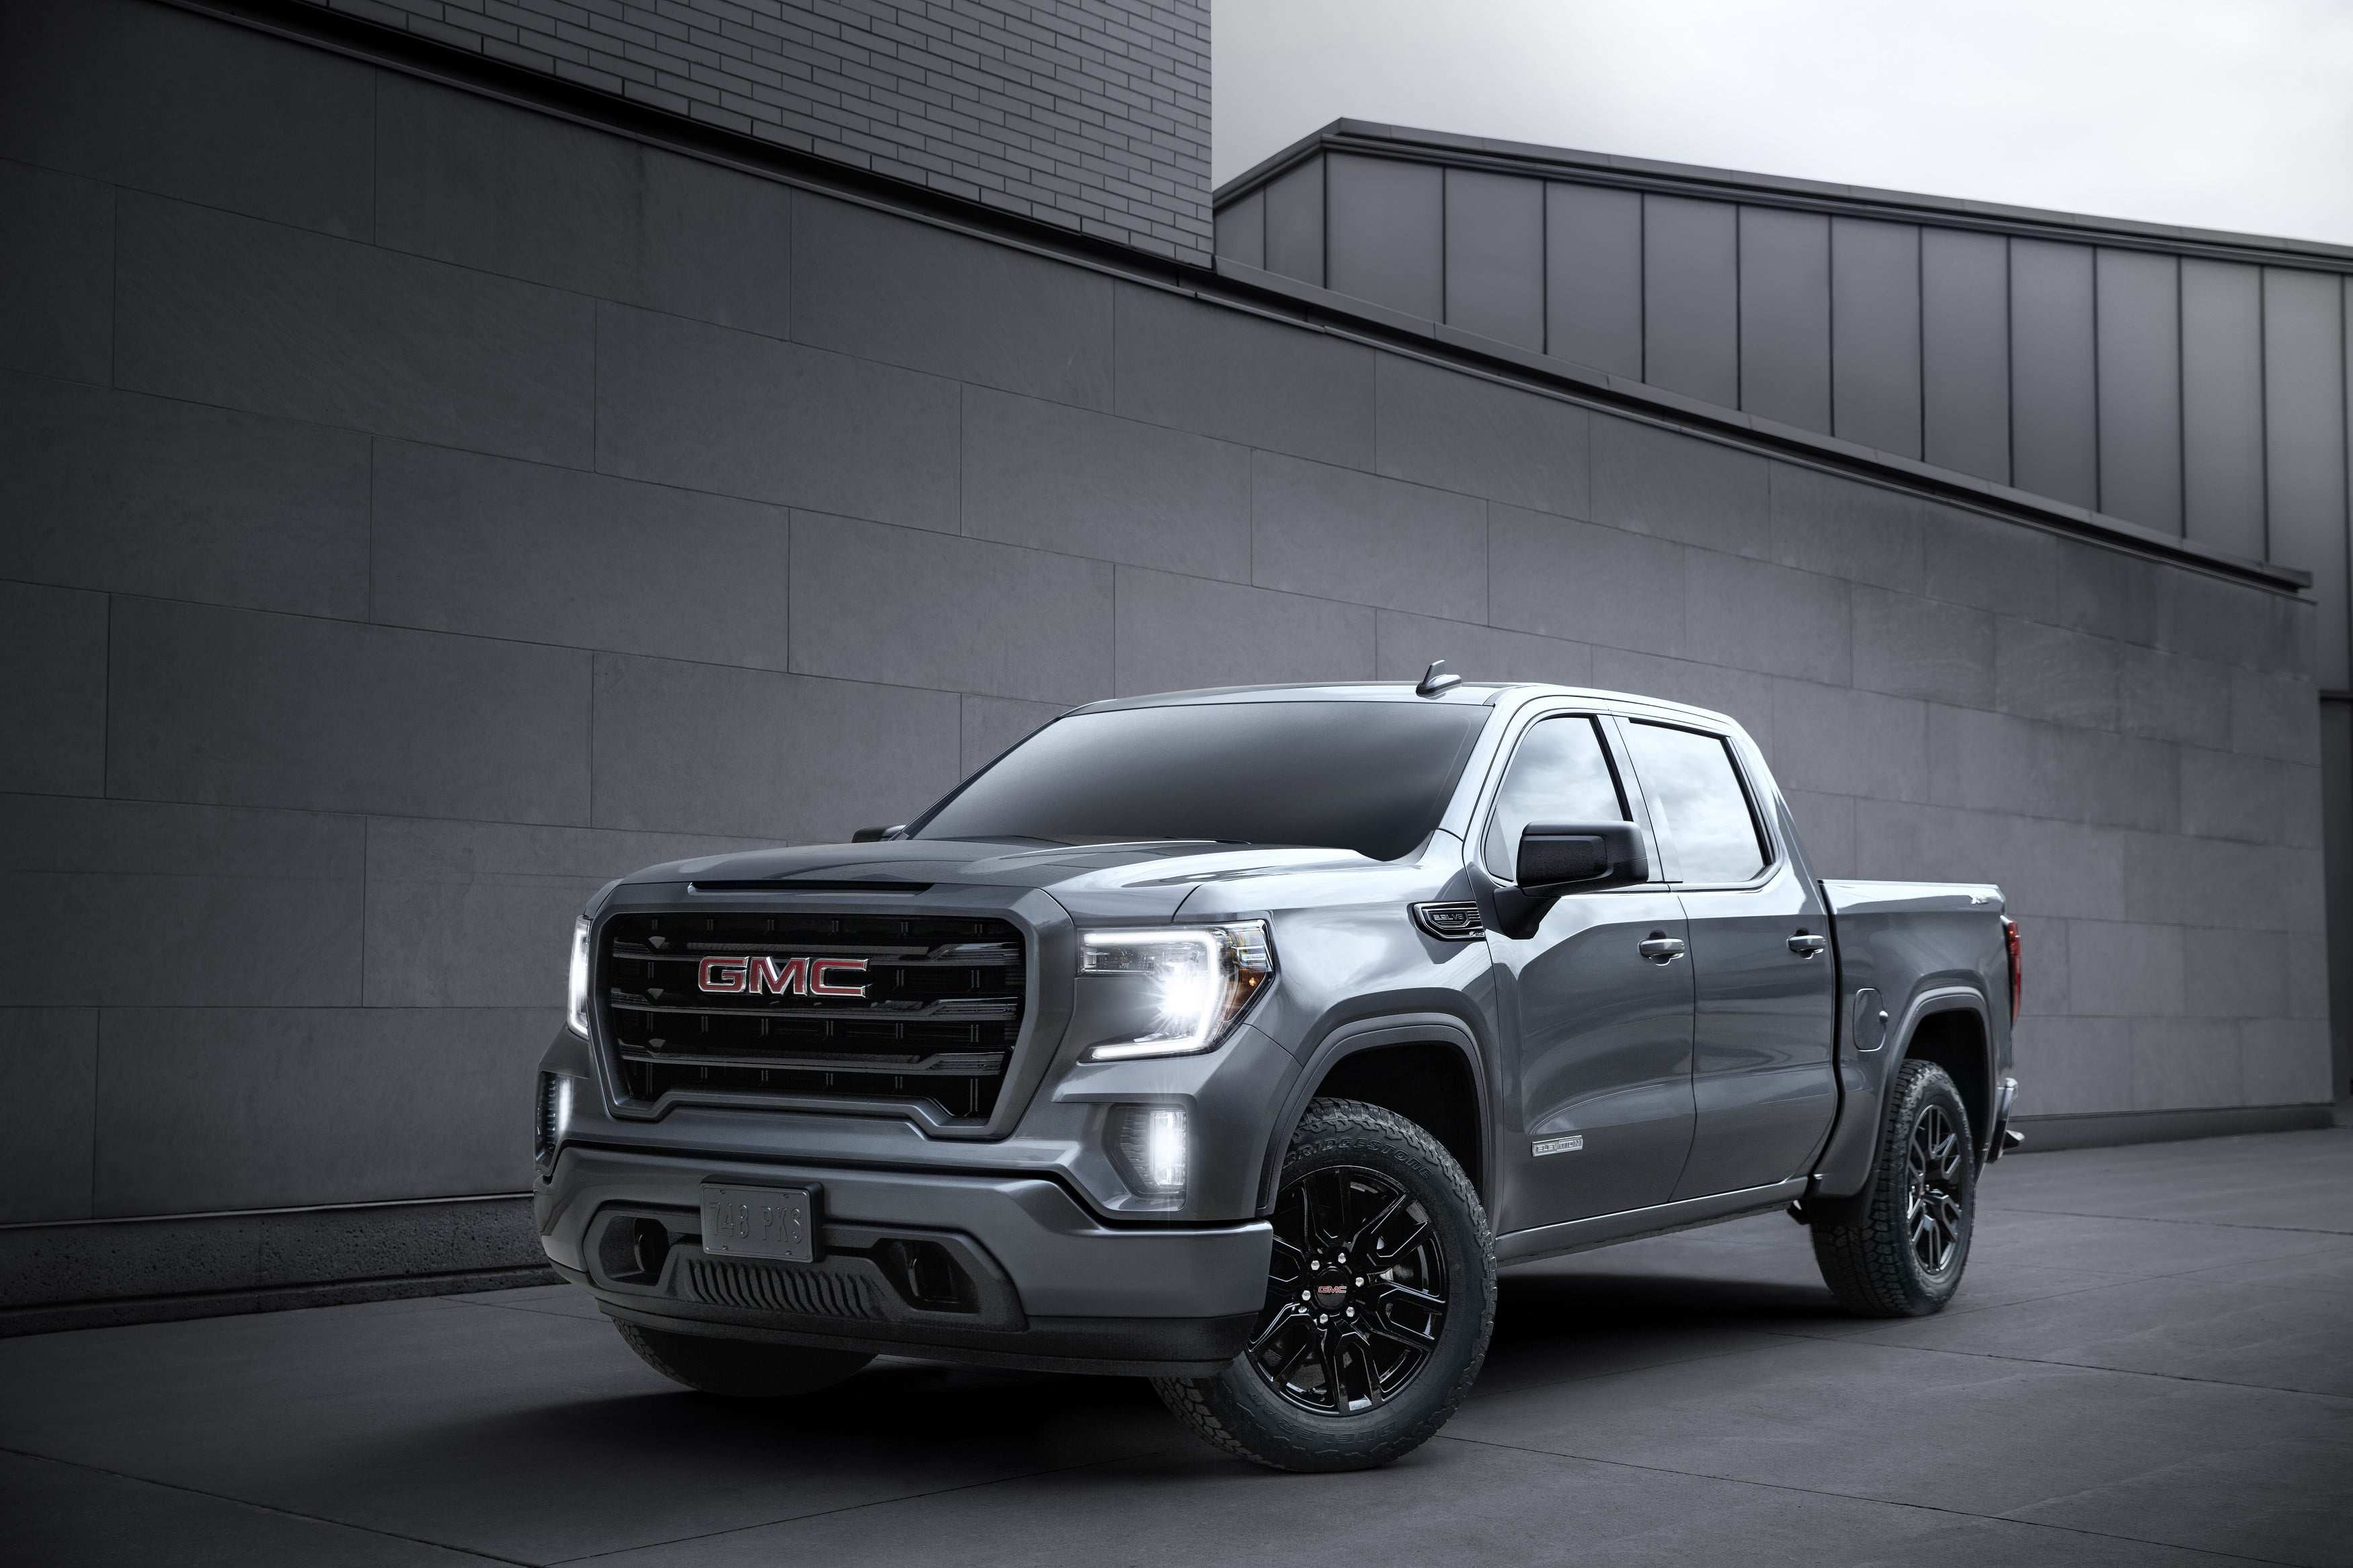 20 All New When Does The 2020 Gmc Sierra Come Out First Drive